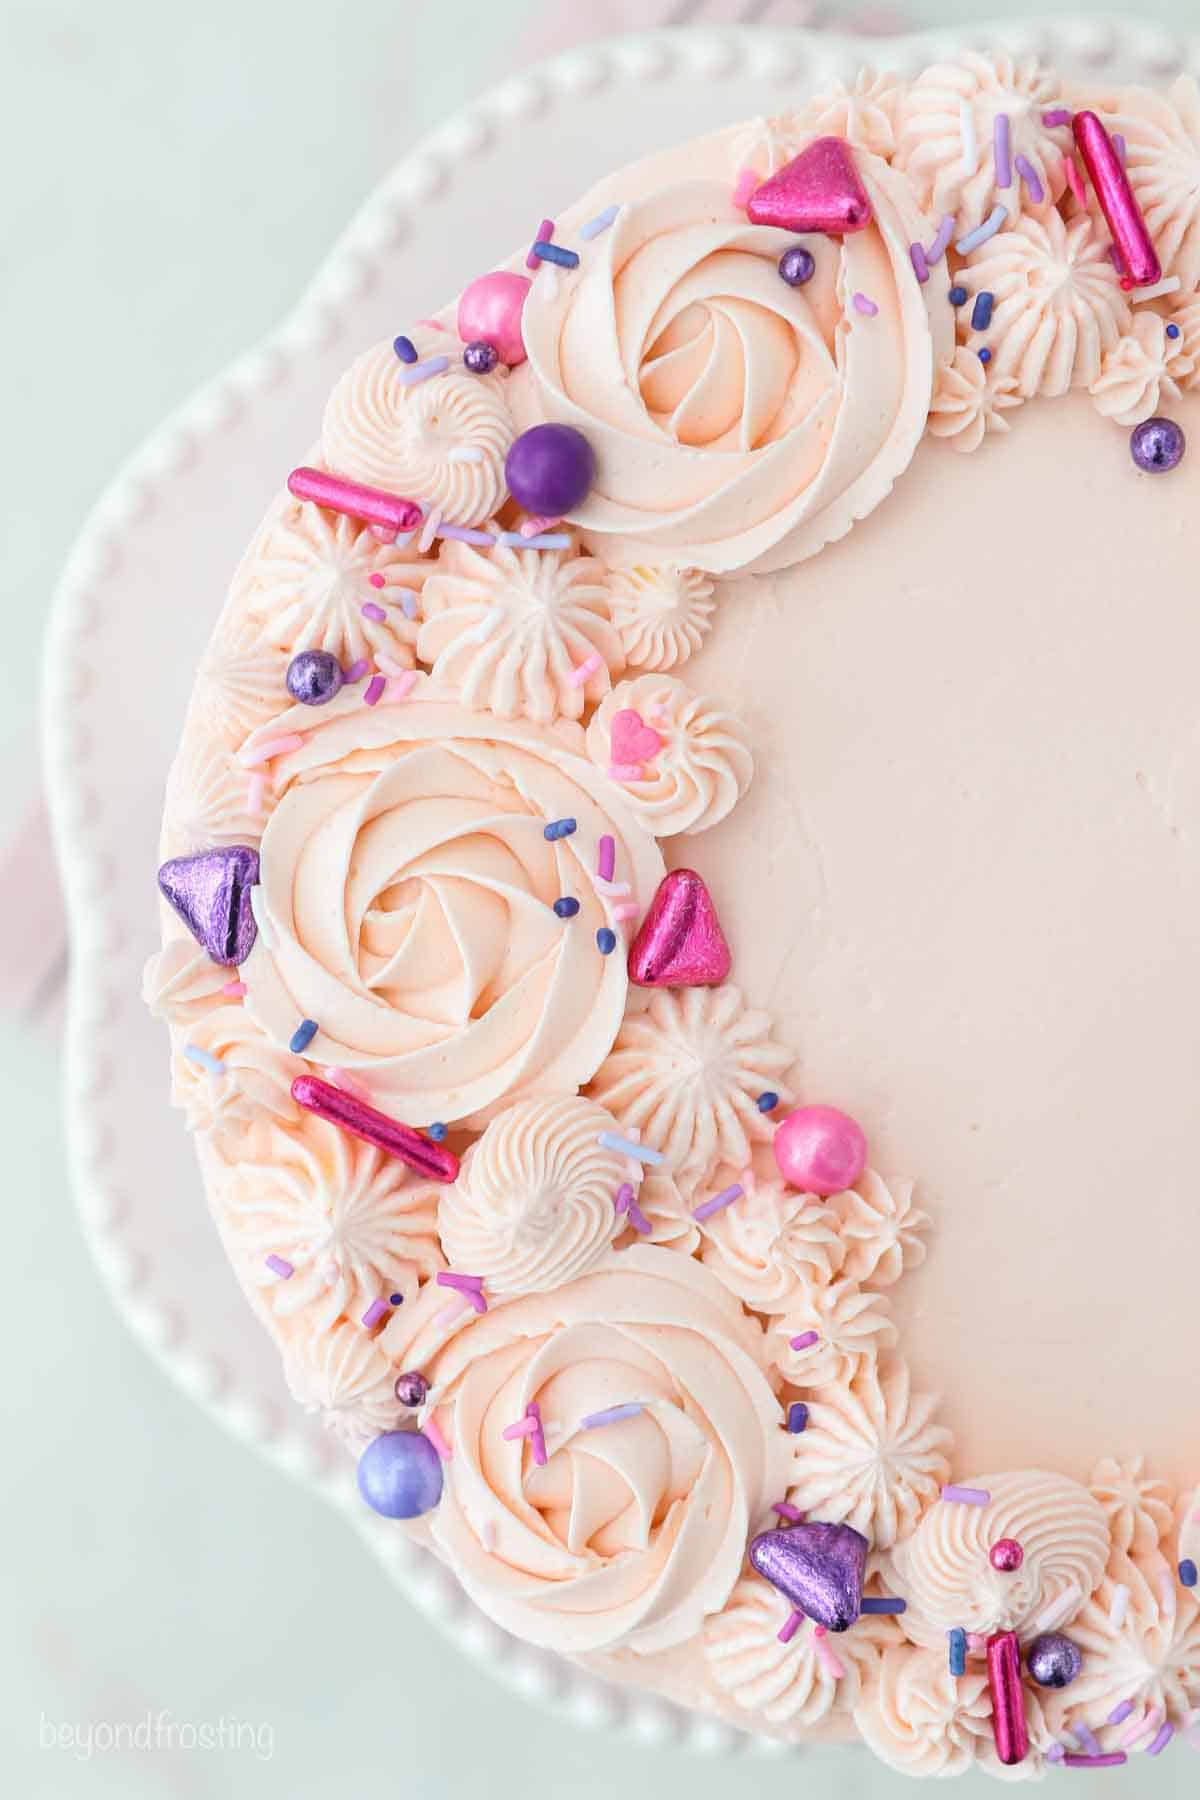 The top of a the cake, decorated with frosting roses and sprinkles.